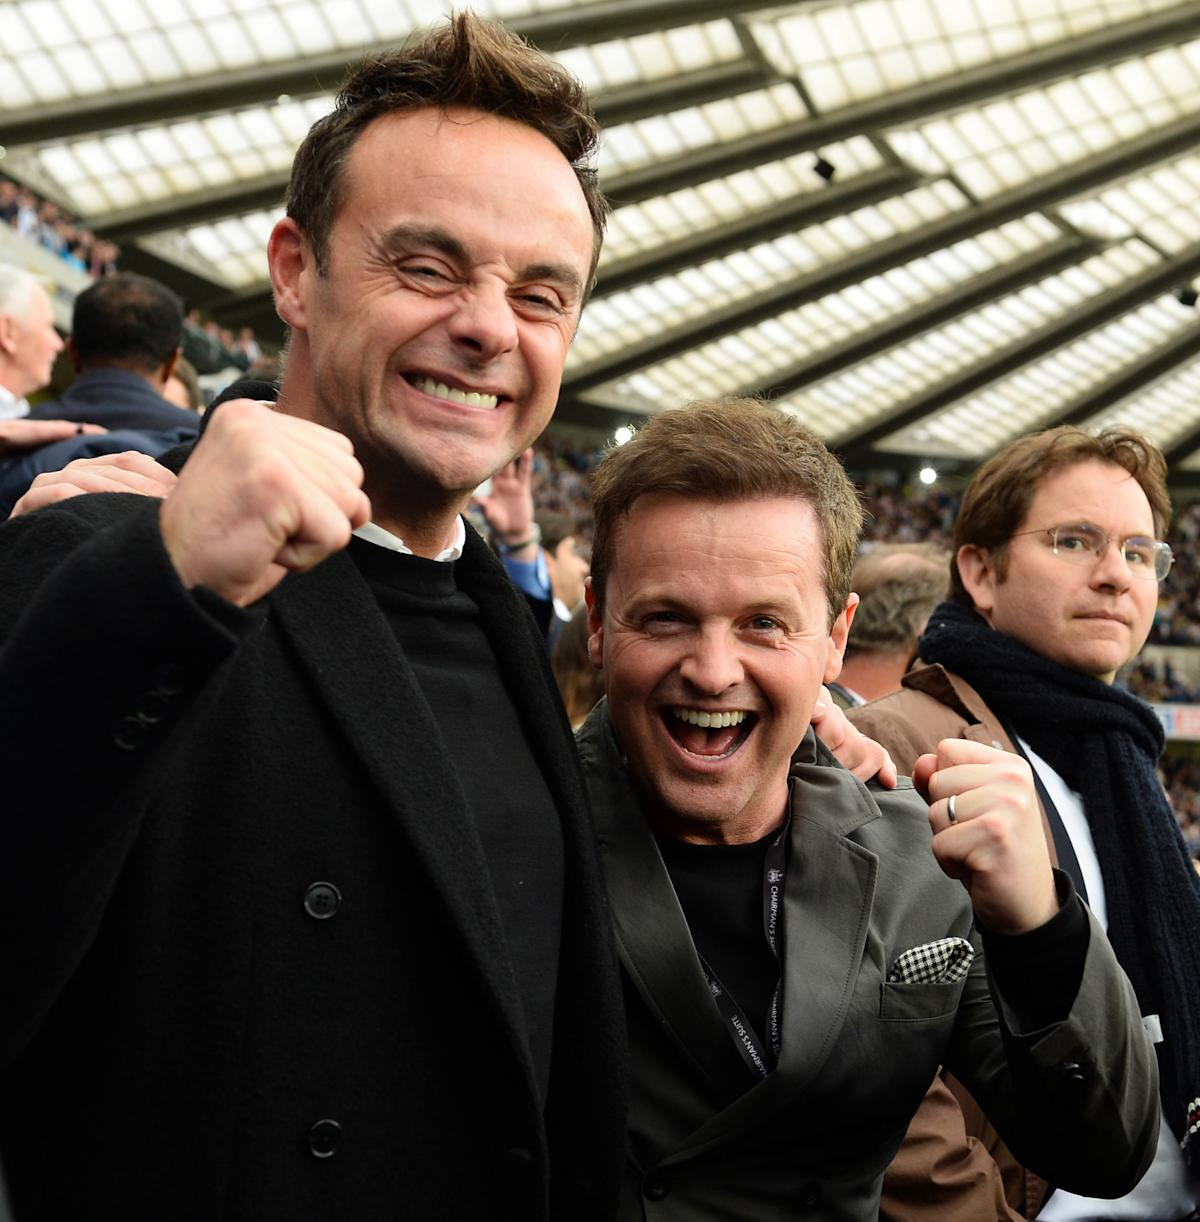 Ant and Dec sit wrong way round as they watch Newcastle United lose football match